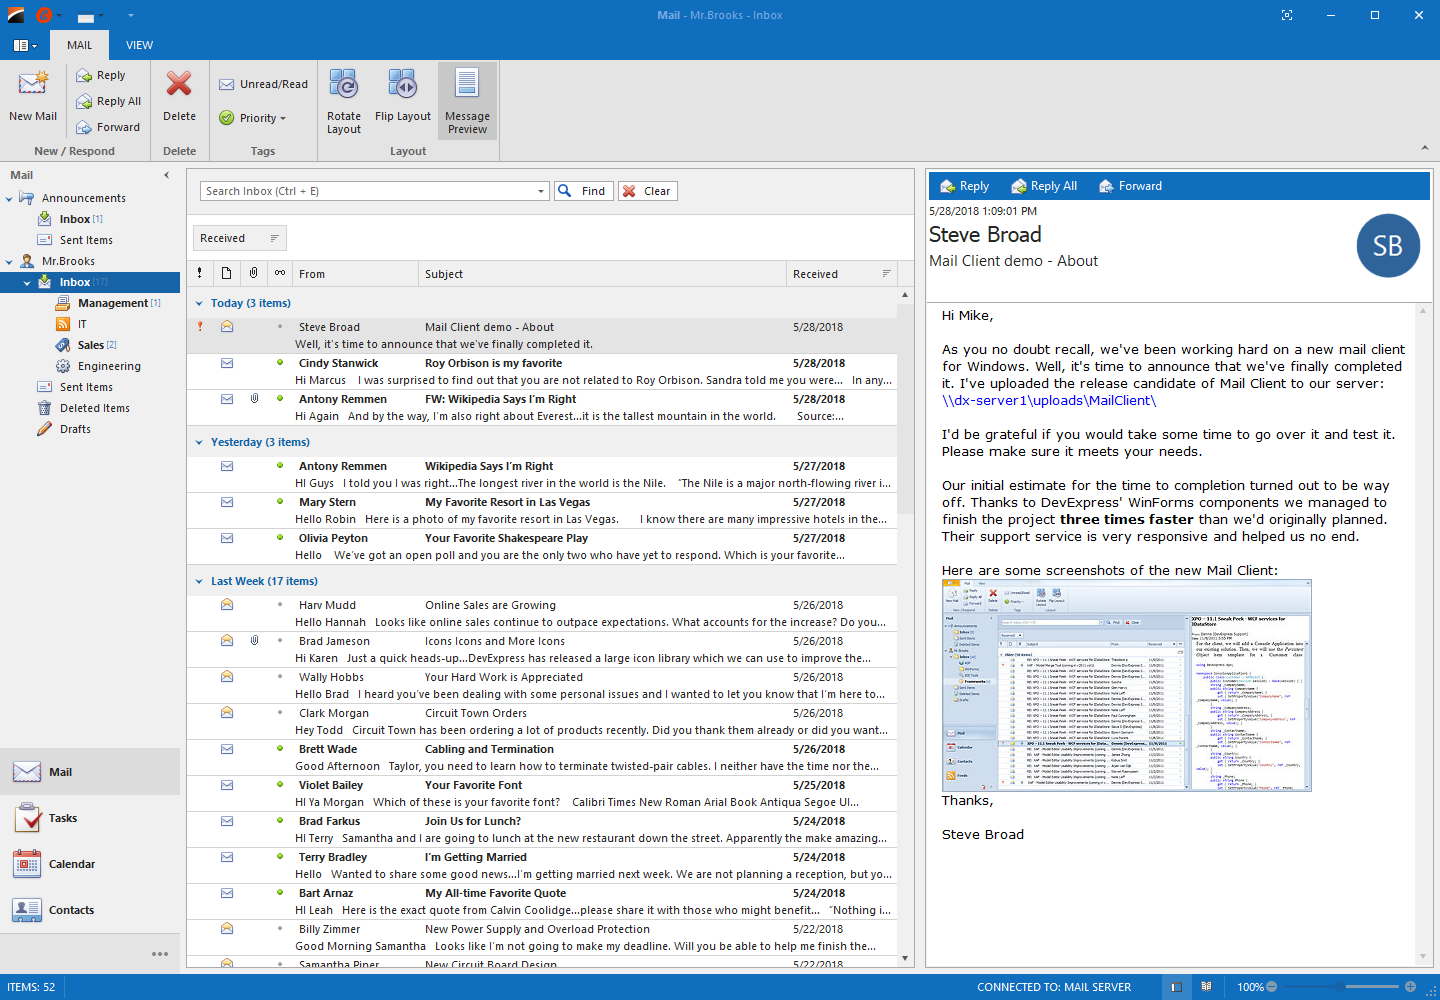 Navigation Pane in Mail Client Application